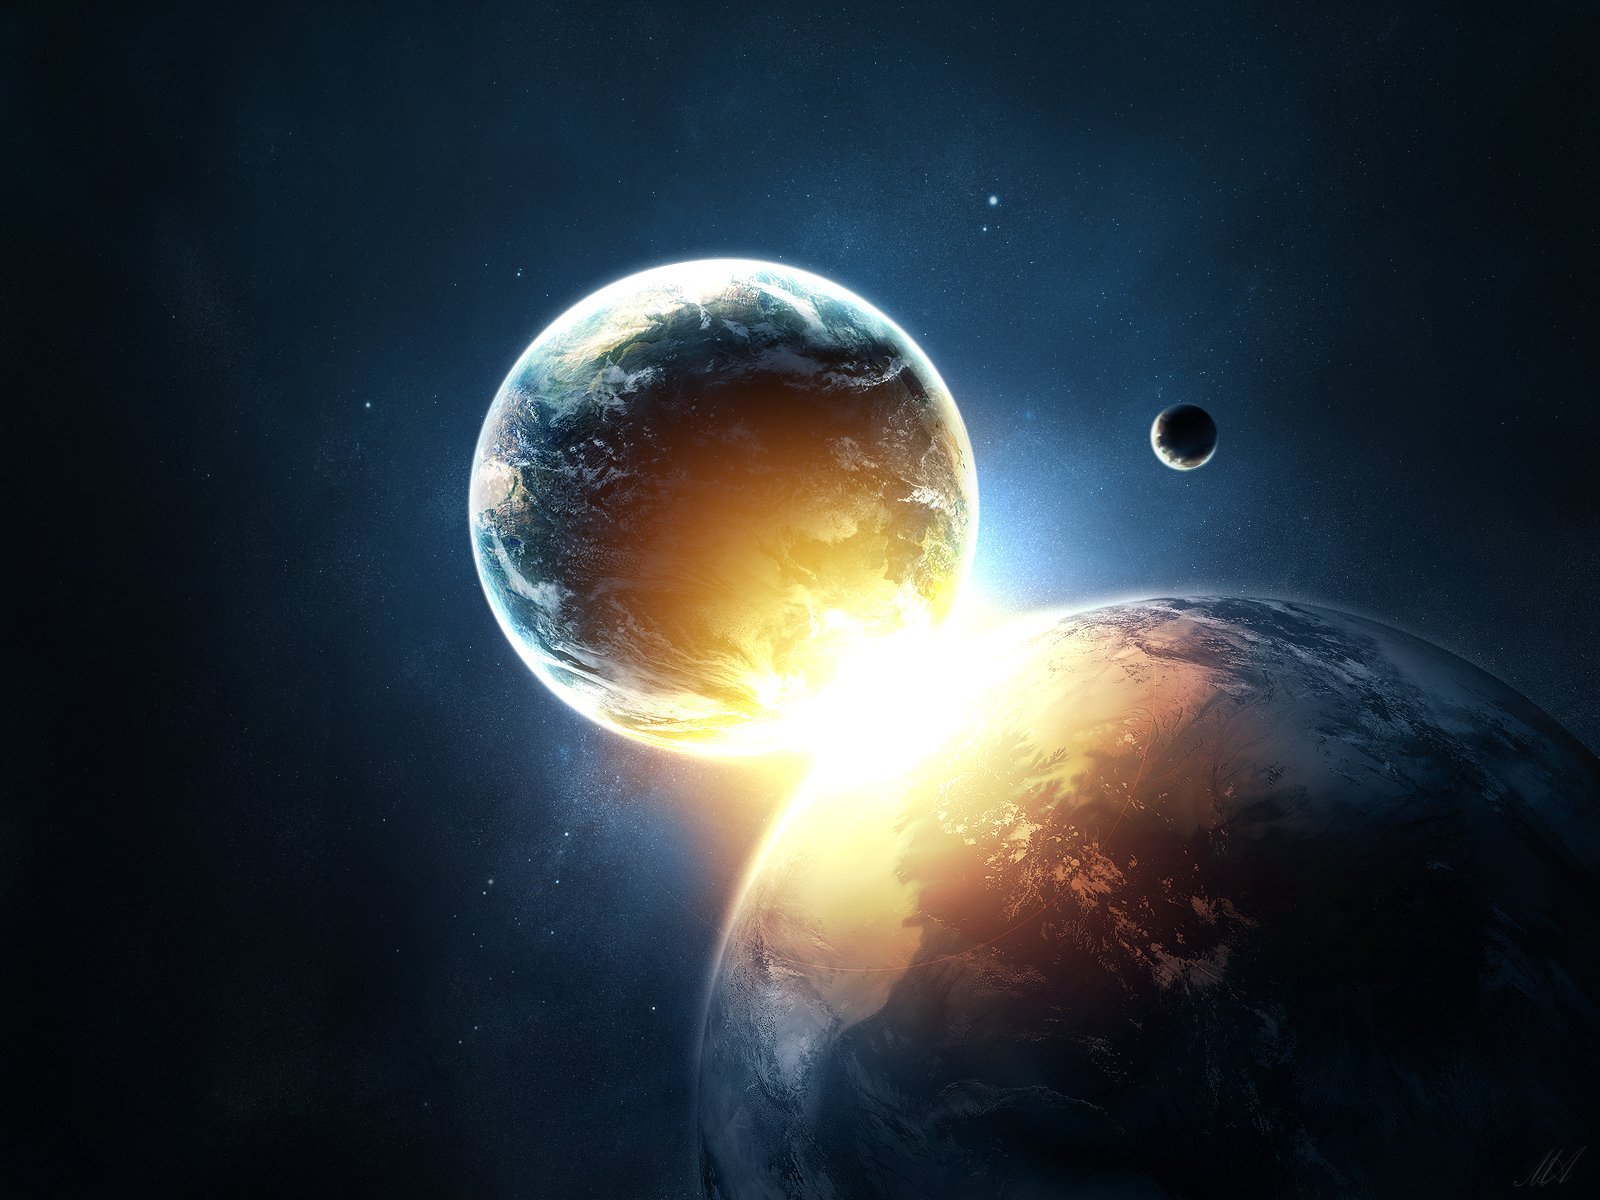 Free Download Planets Collide Wallpapers Hd Wallpapers 1600x1200